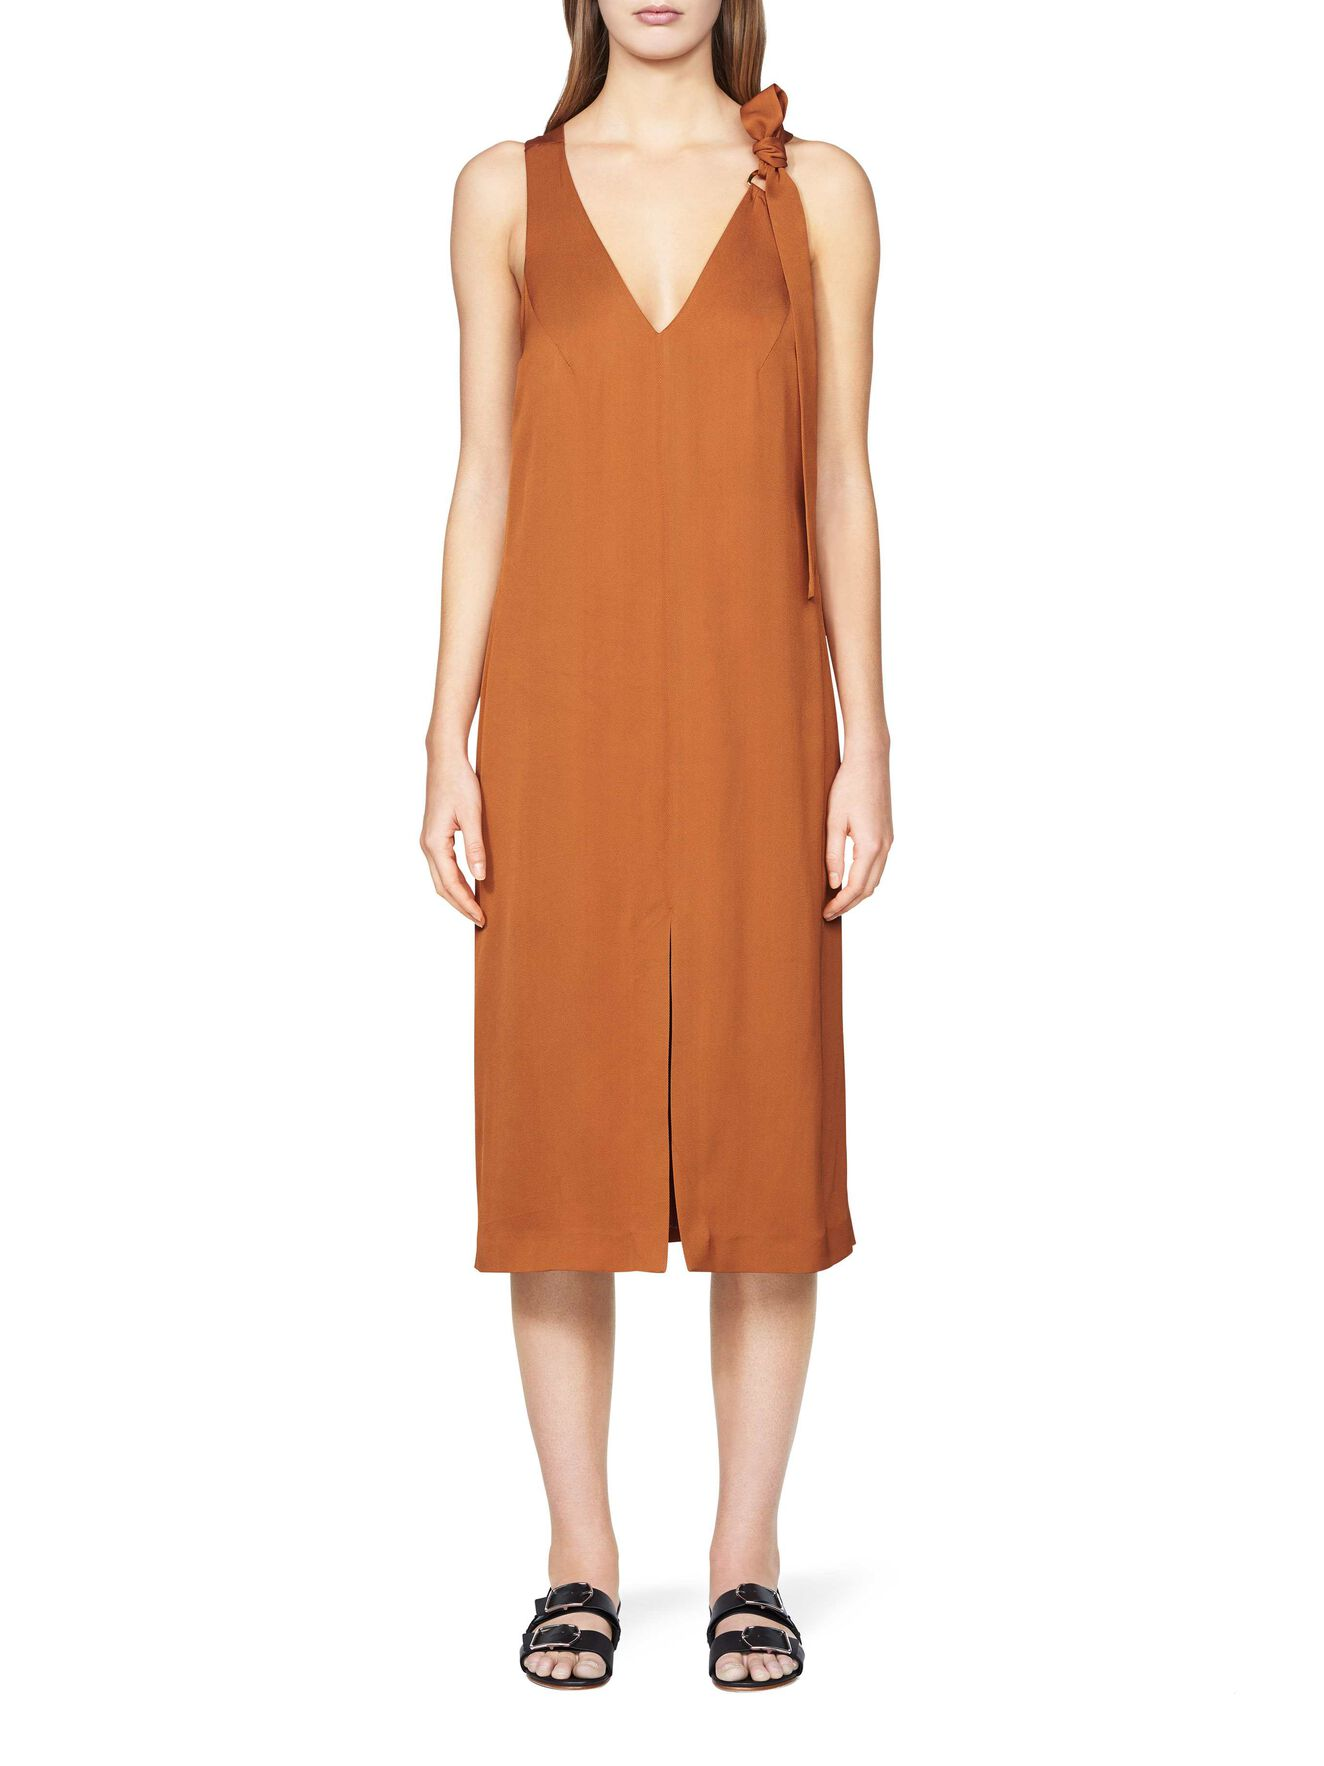 Ziva dress  in Leather Brown from Tiger of Sweden